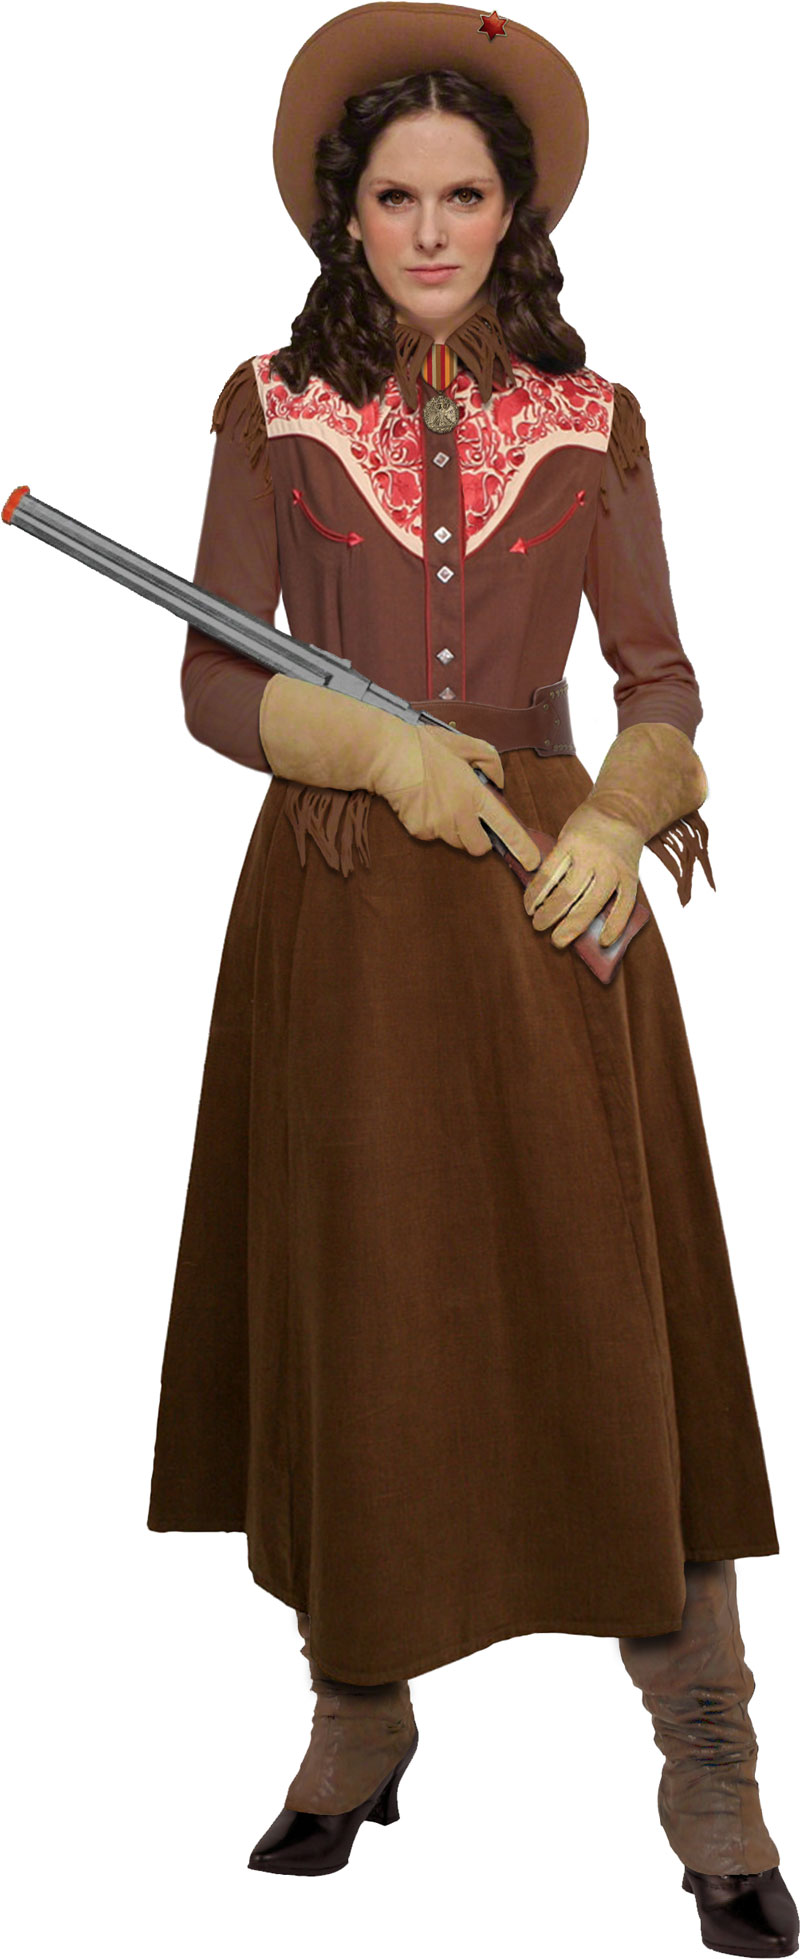 Annie Oakley Costume For Kids  sc 1 st  Heritage Malta & Annie Oakley Costume For Kids « Heritage Malta